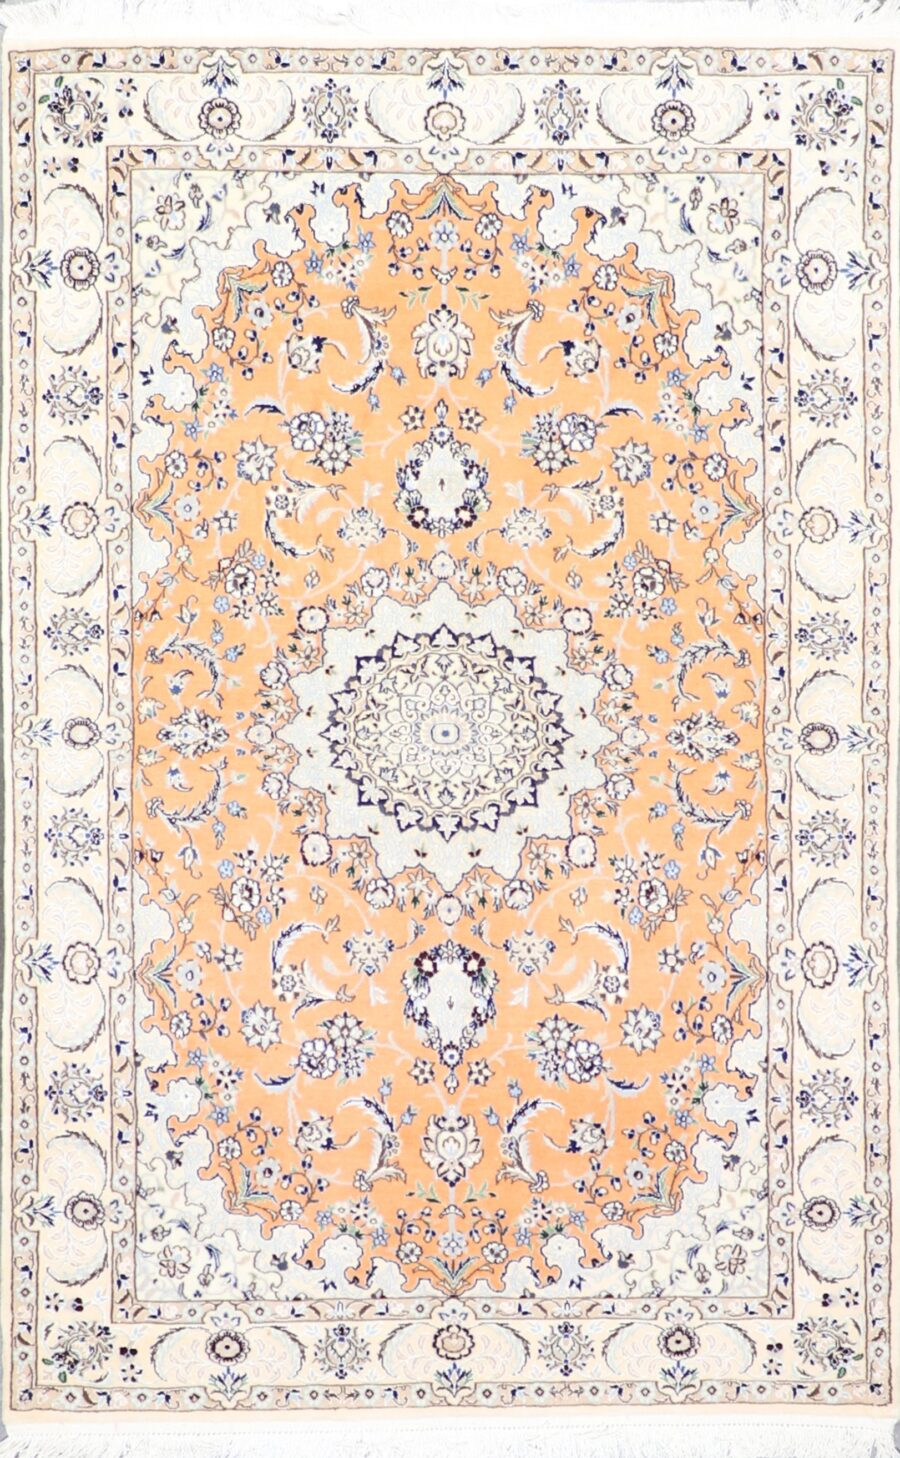 """4'4""""x7' Traditional Persian Tabriz Orange-Gold Wool & Silk Hand-Knotted Rug - Direct Rug Import   Rugs in Chicago, Indiana,South Bend,Granger"""